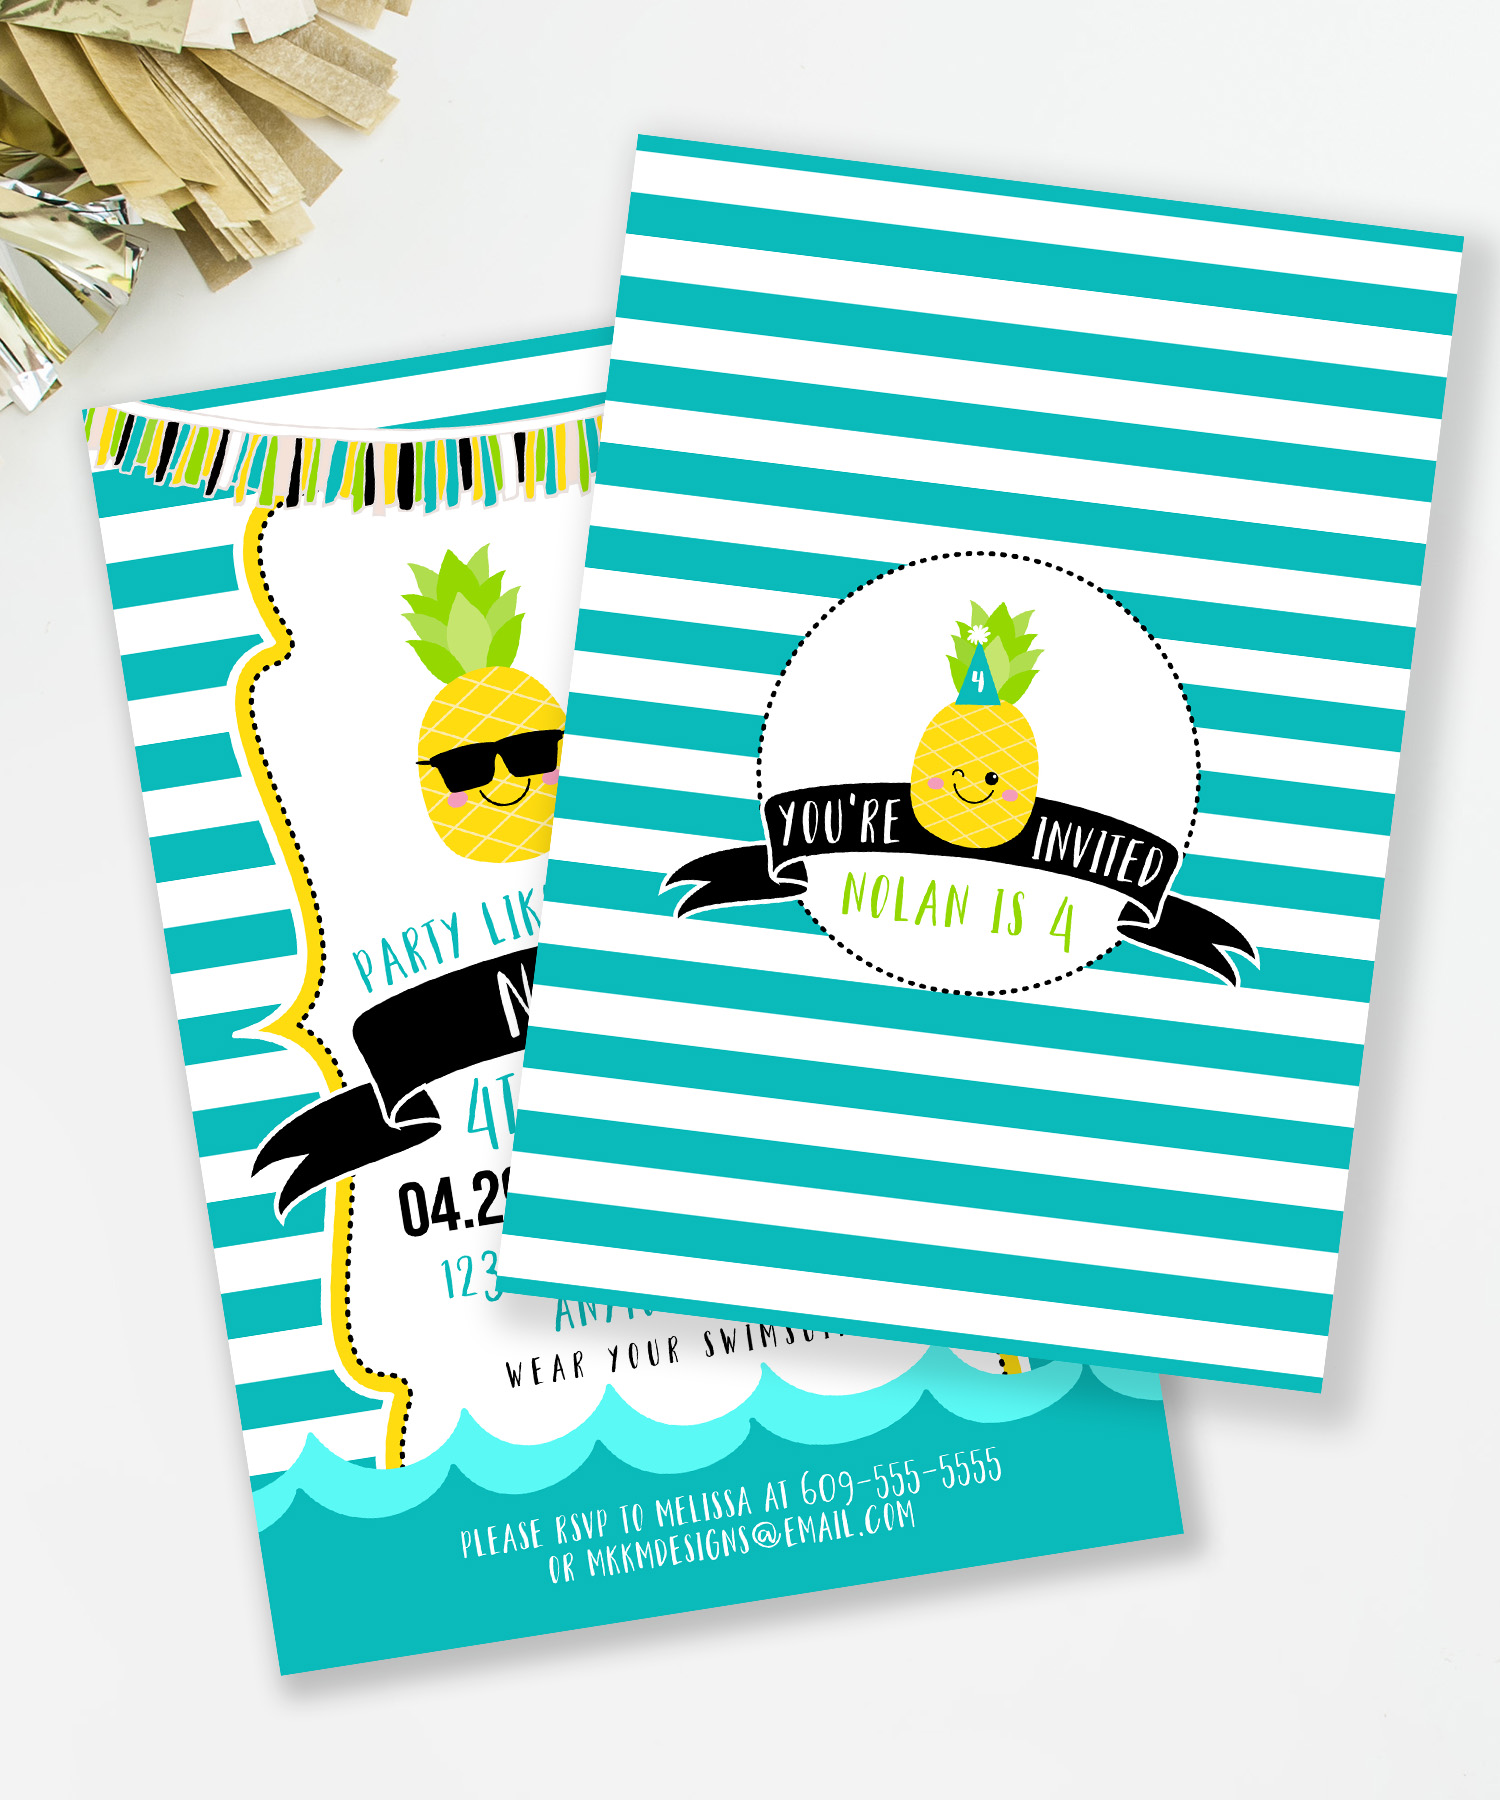 Pineapple party invitations from MKKM Designs